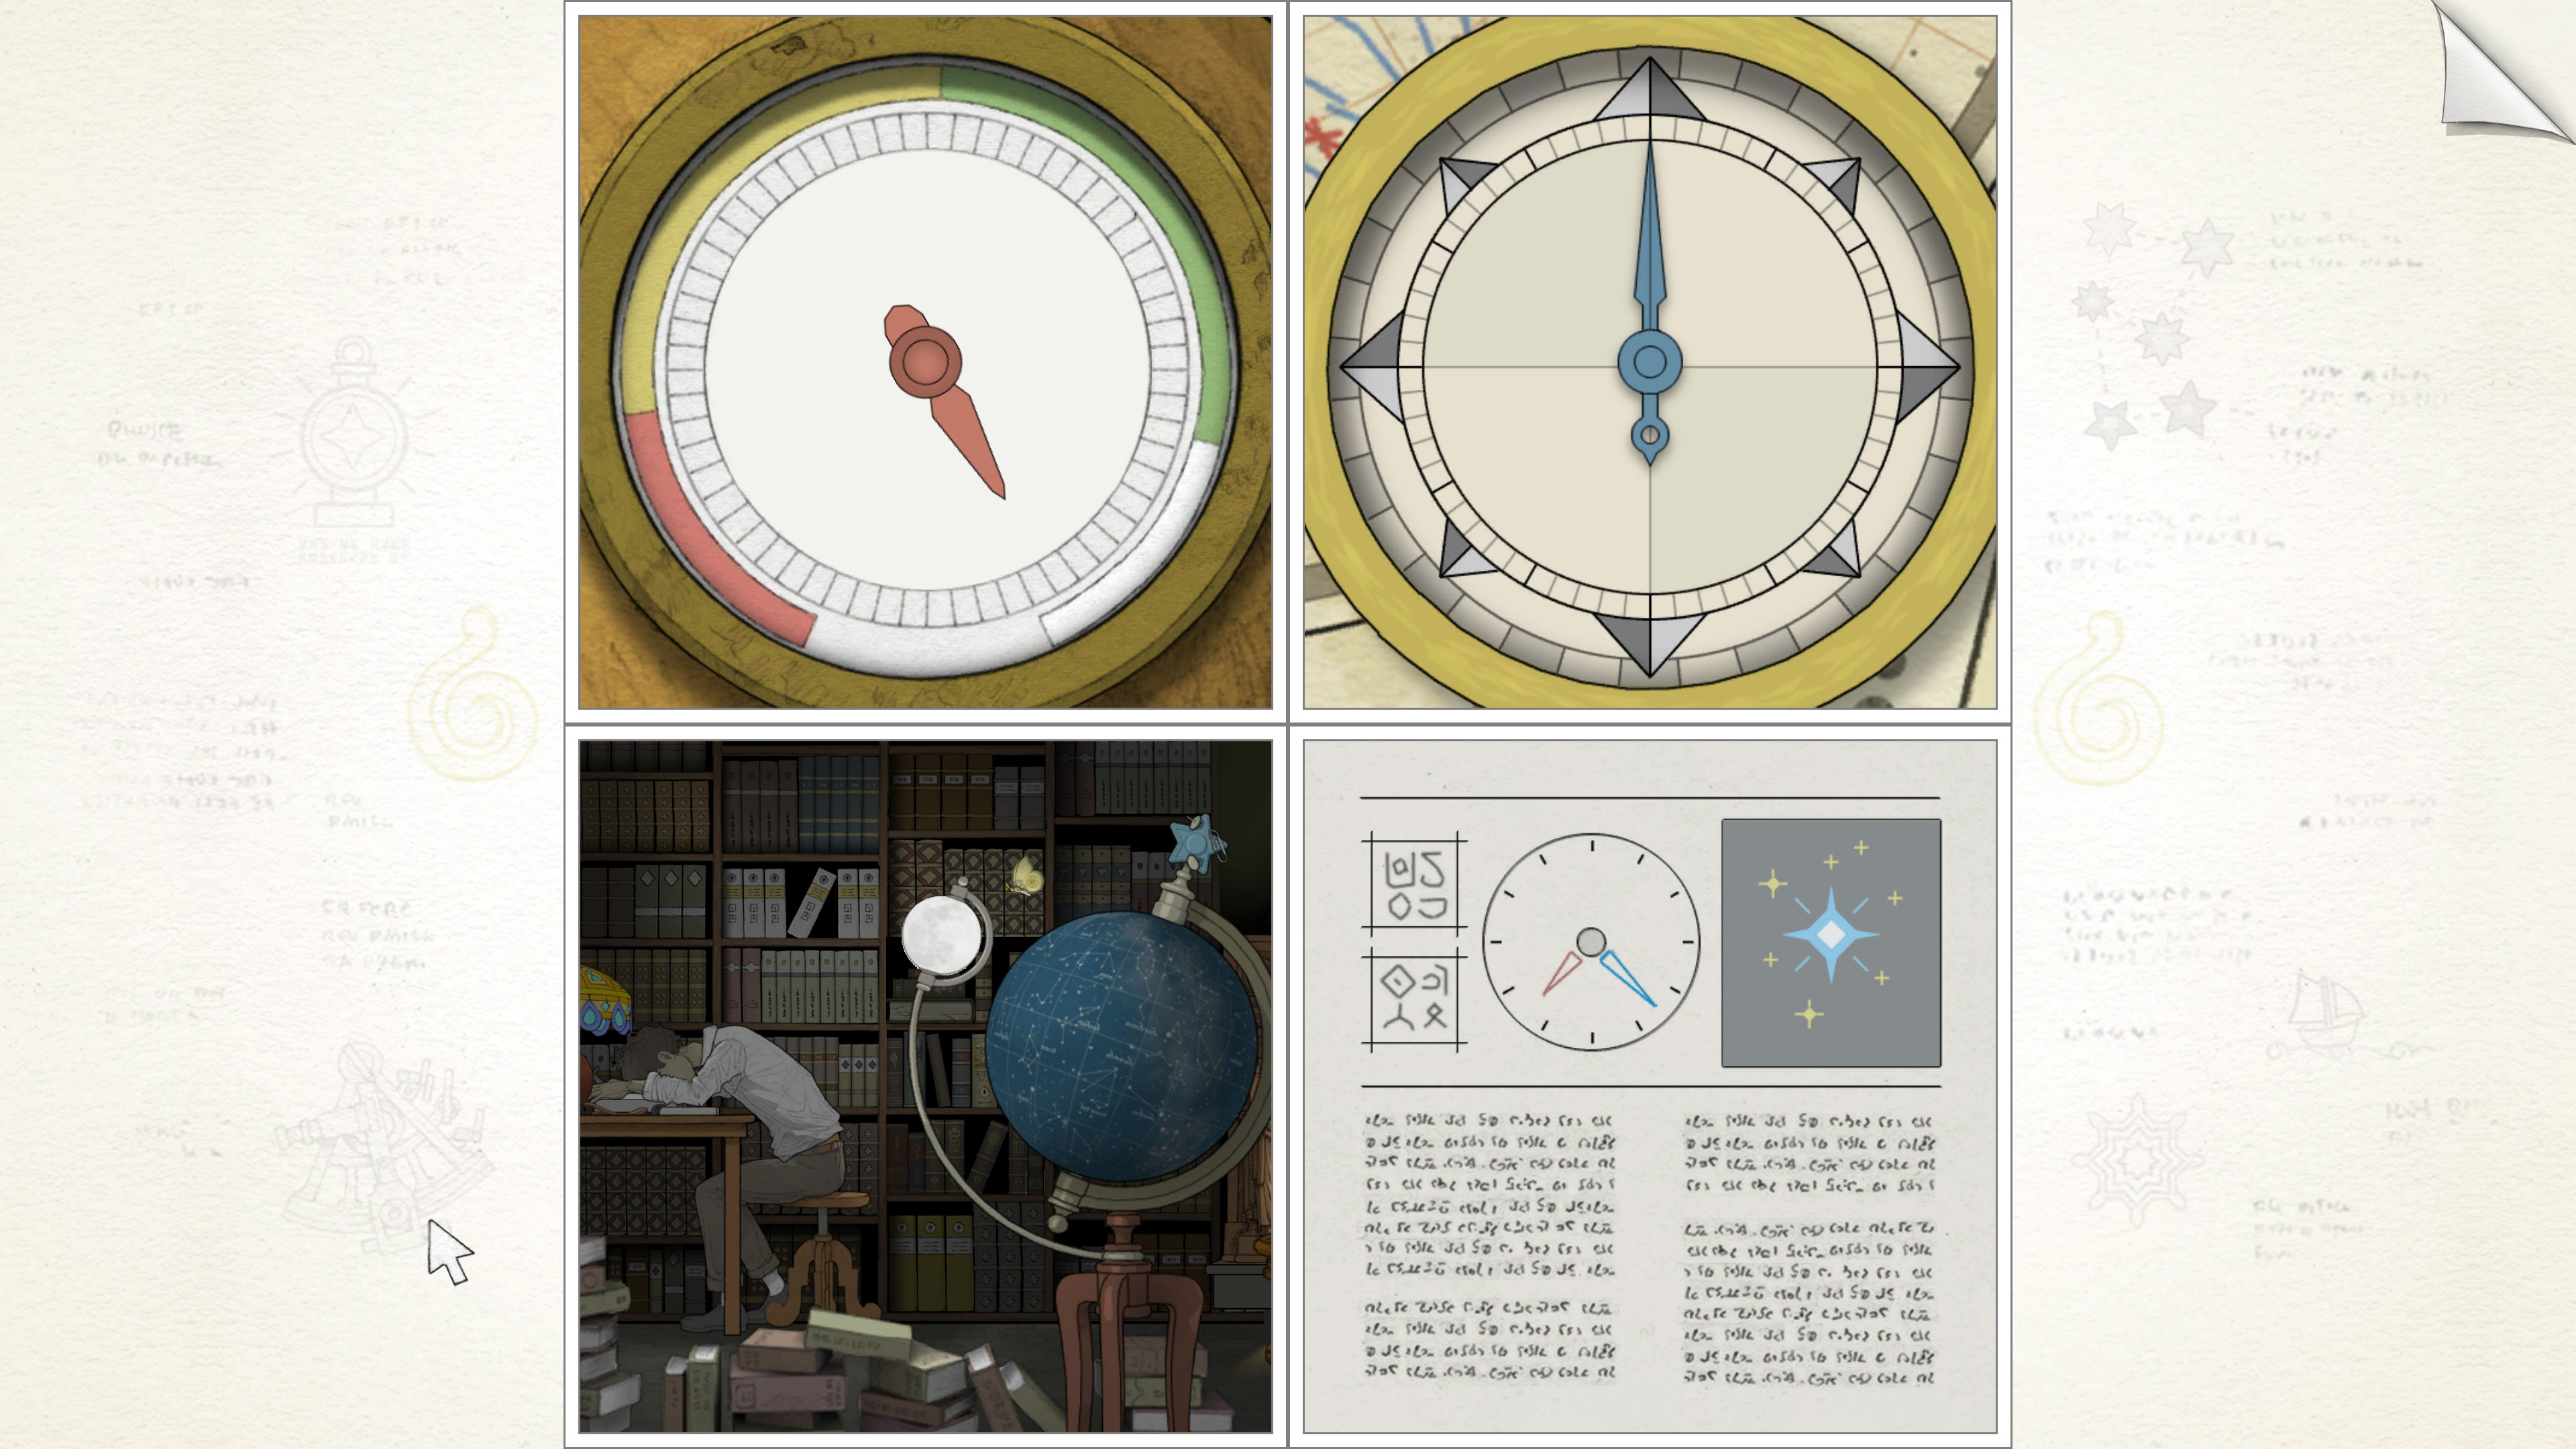 top left, red pressure dial. top right, blue compass needle. bottom right, diagram of a star and clock using red and blue hands. bottom left, young man asleep at a library desk with a globe in the foreground.